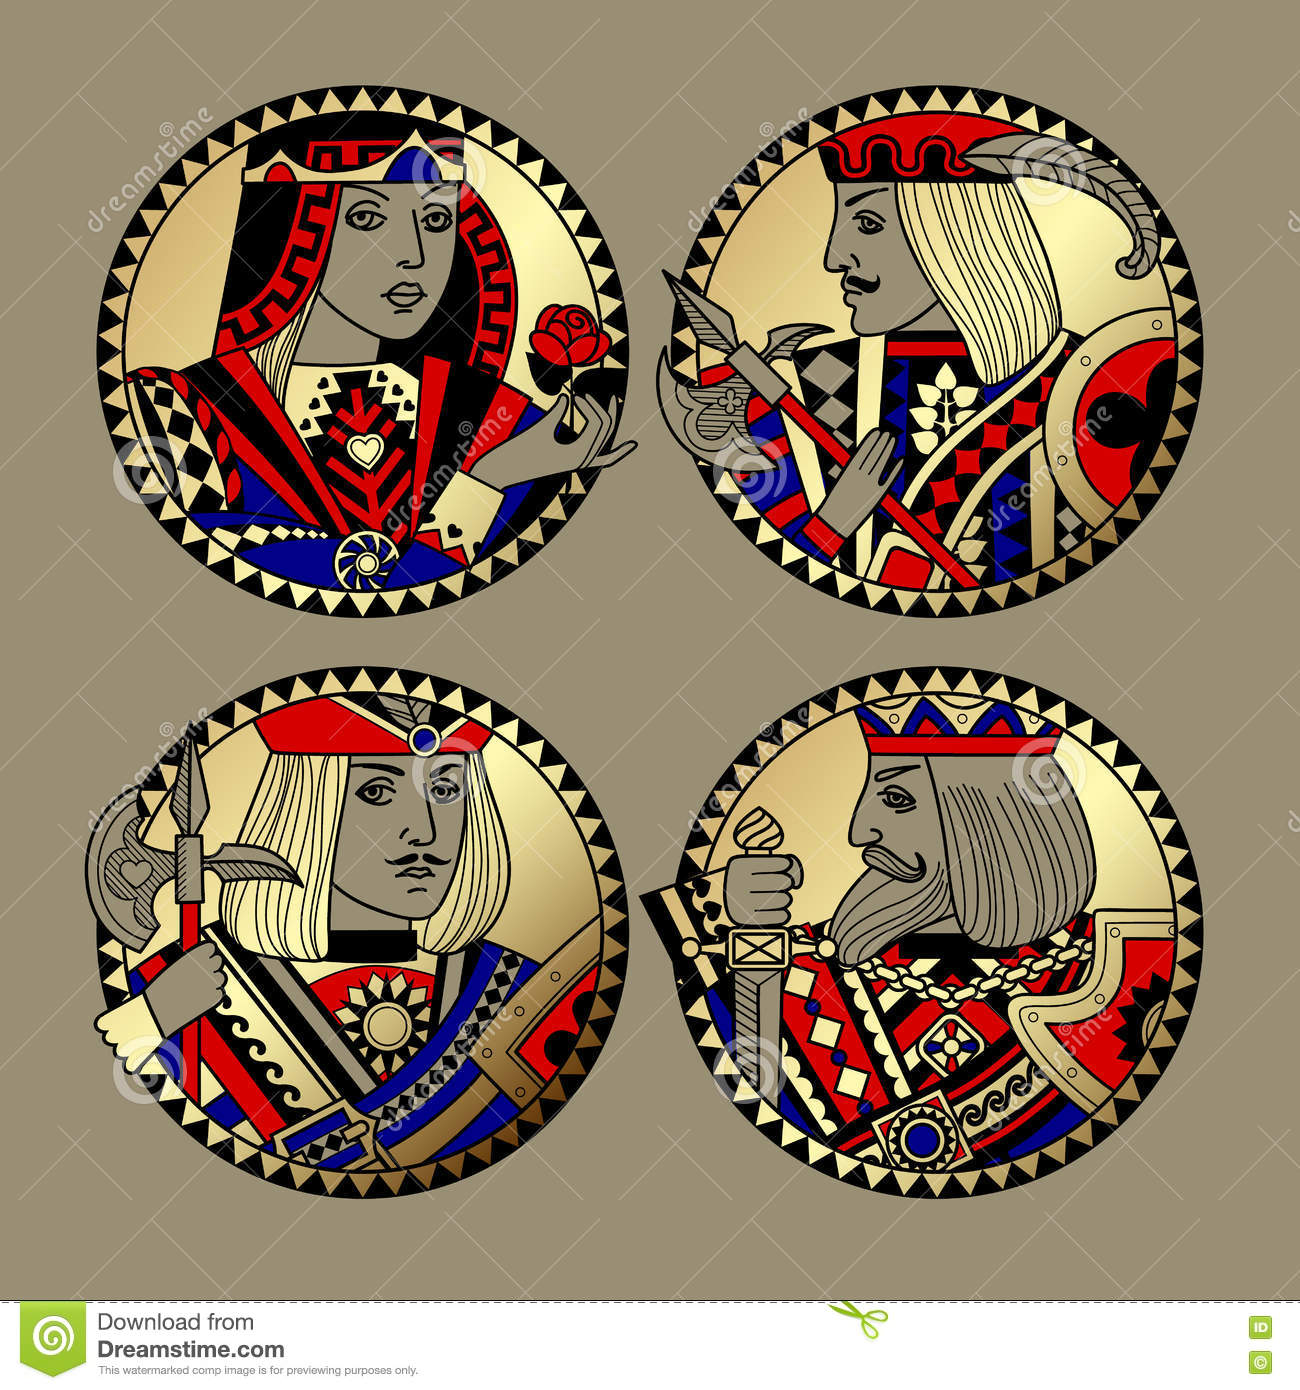 Round shapes with faces of playing cards characters